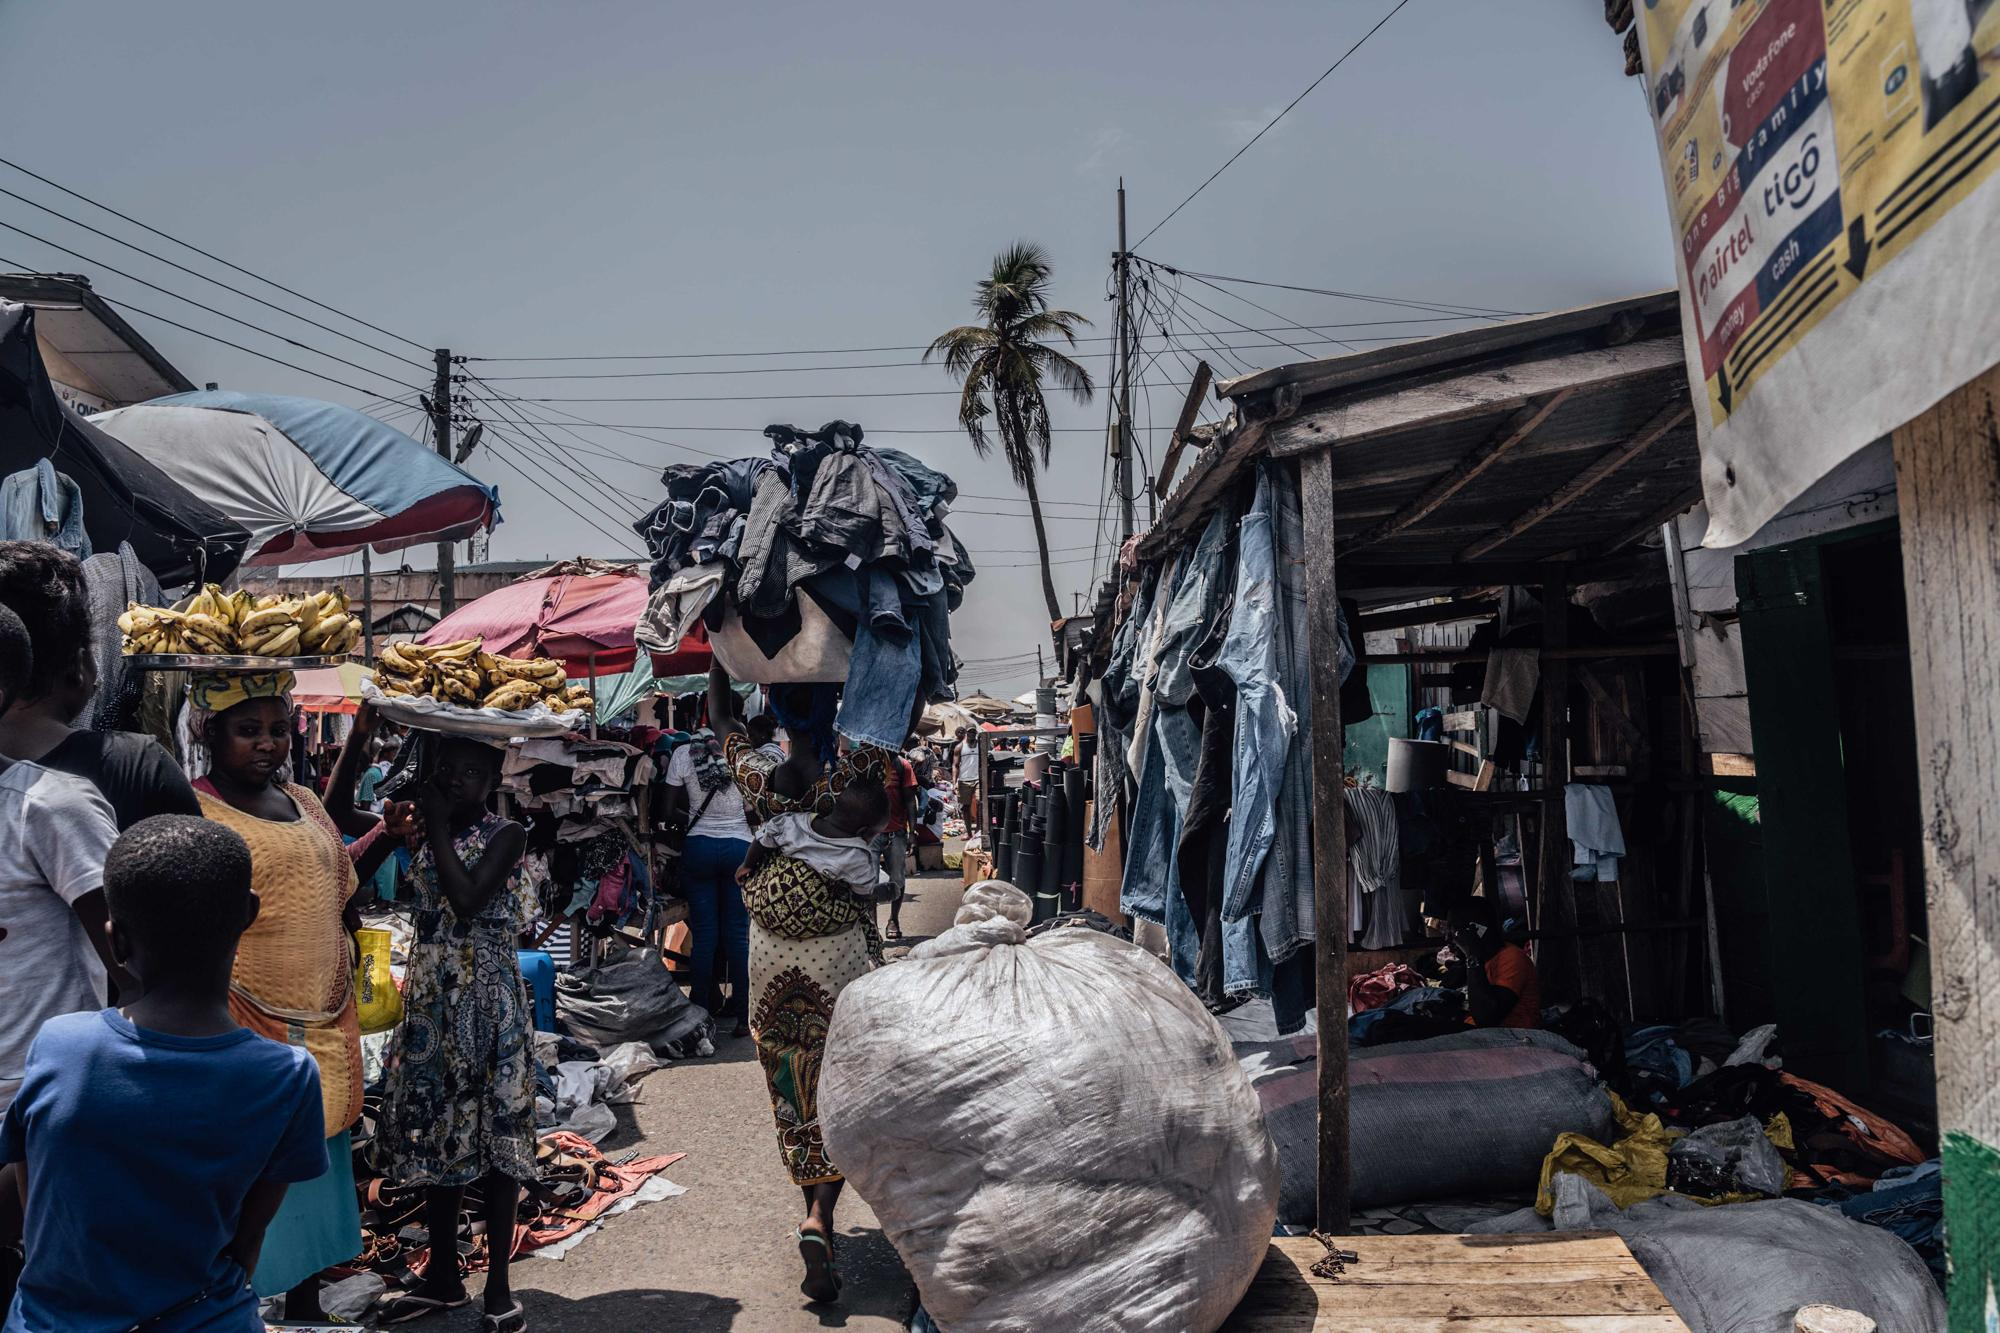 Asana carries a load with her son wrapped at the back in the sweltering heat of Accra's market.